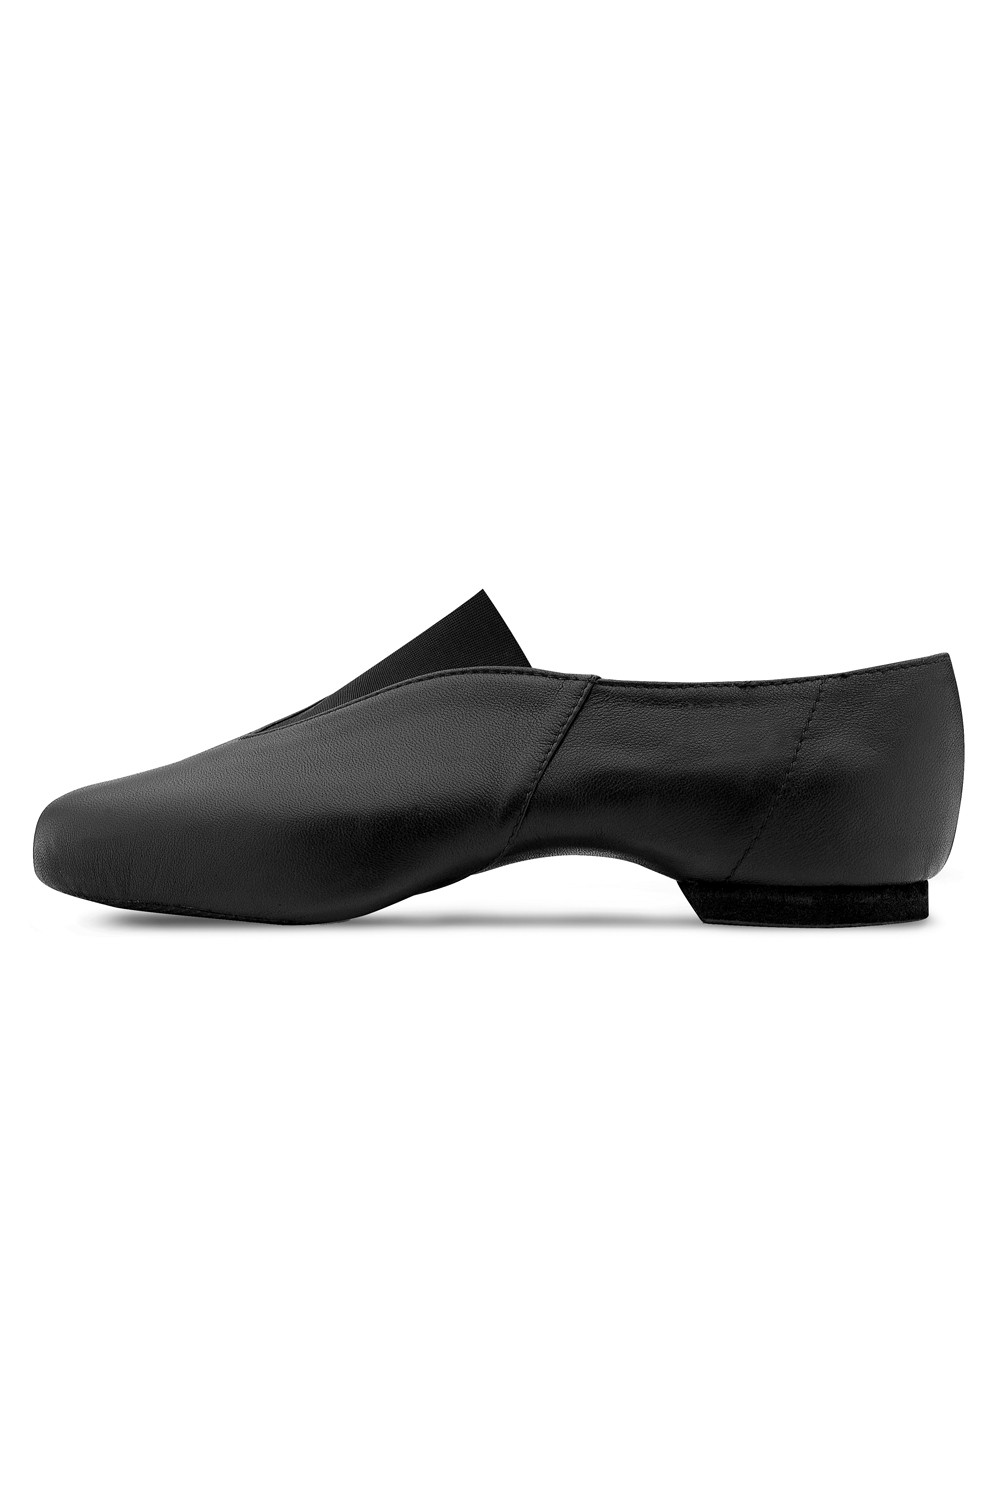 Pure Jazz - Fille Girl's Jazz Shoes